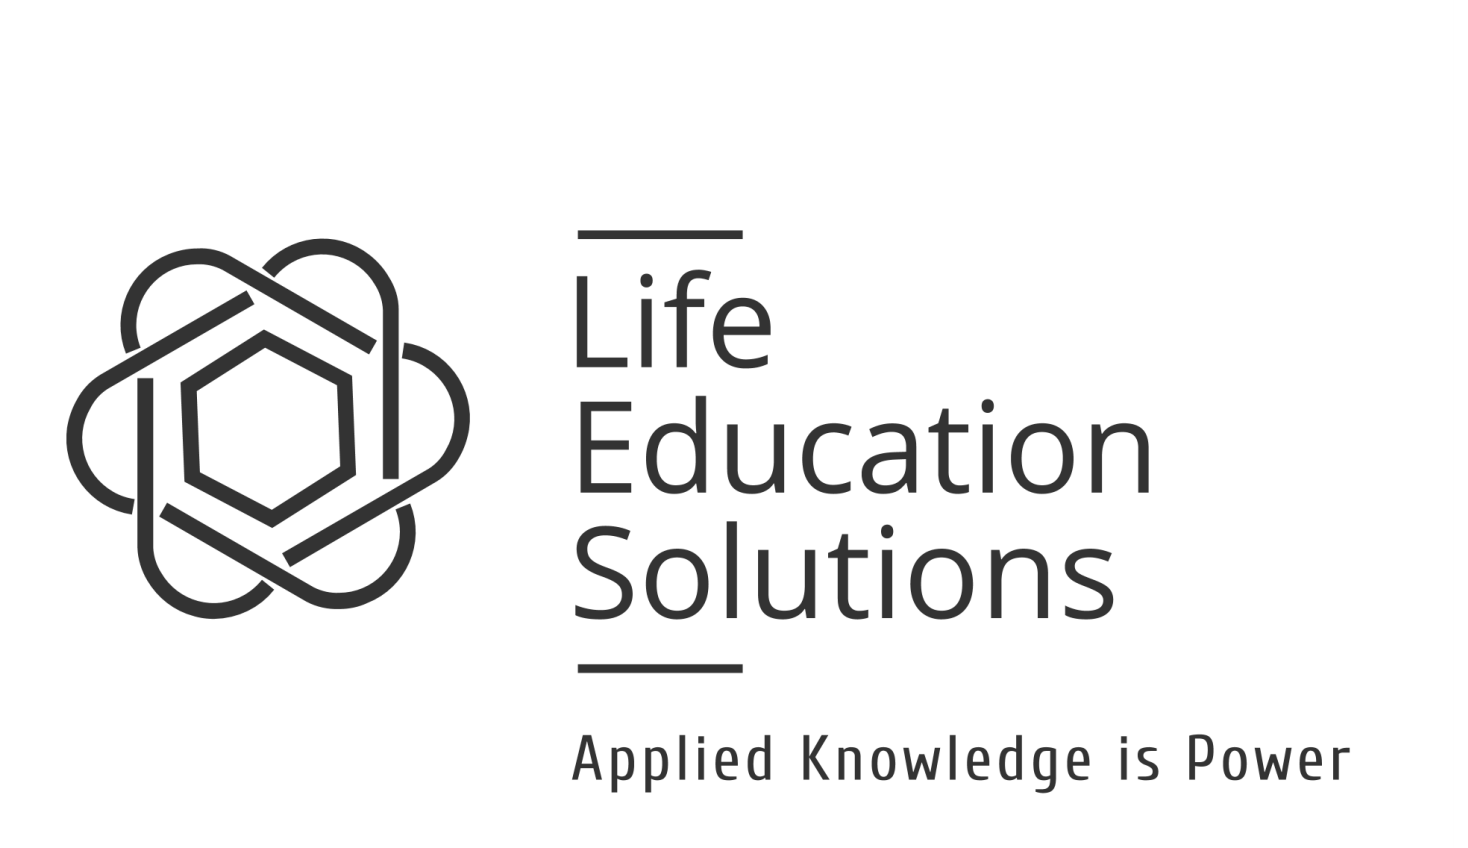 Life Education Solutions image